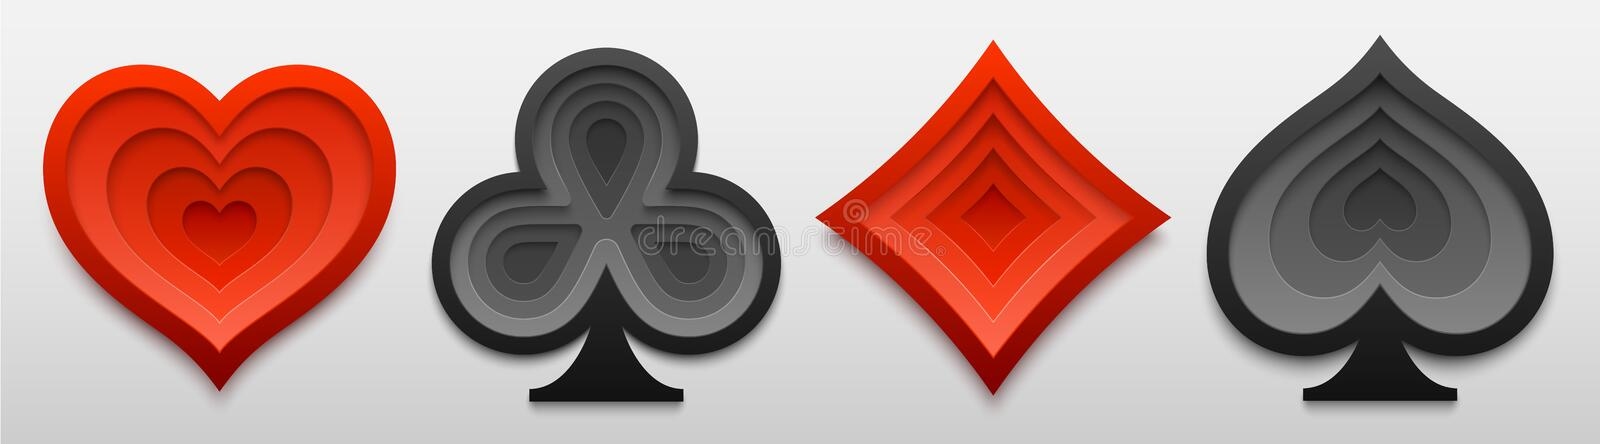 Set of playing card suit sign shapes. Paper art of four card symbols. Vector illustration stock illustration